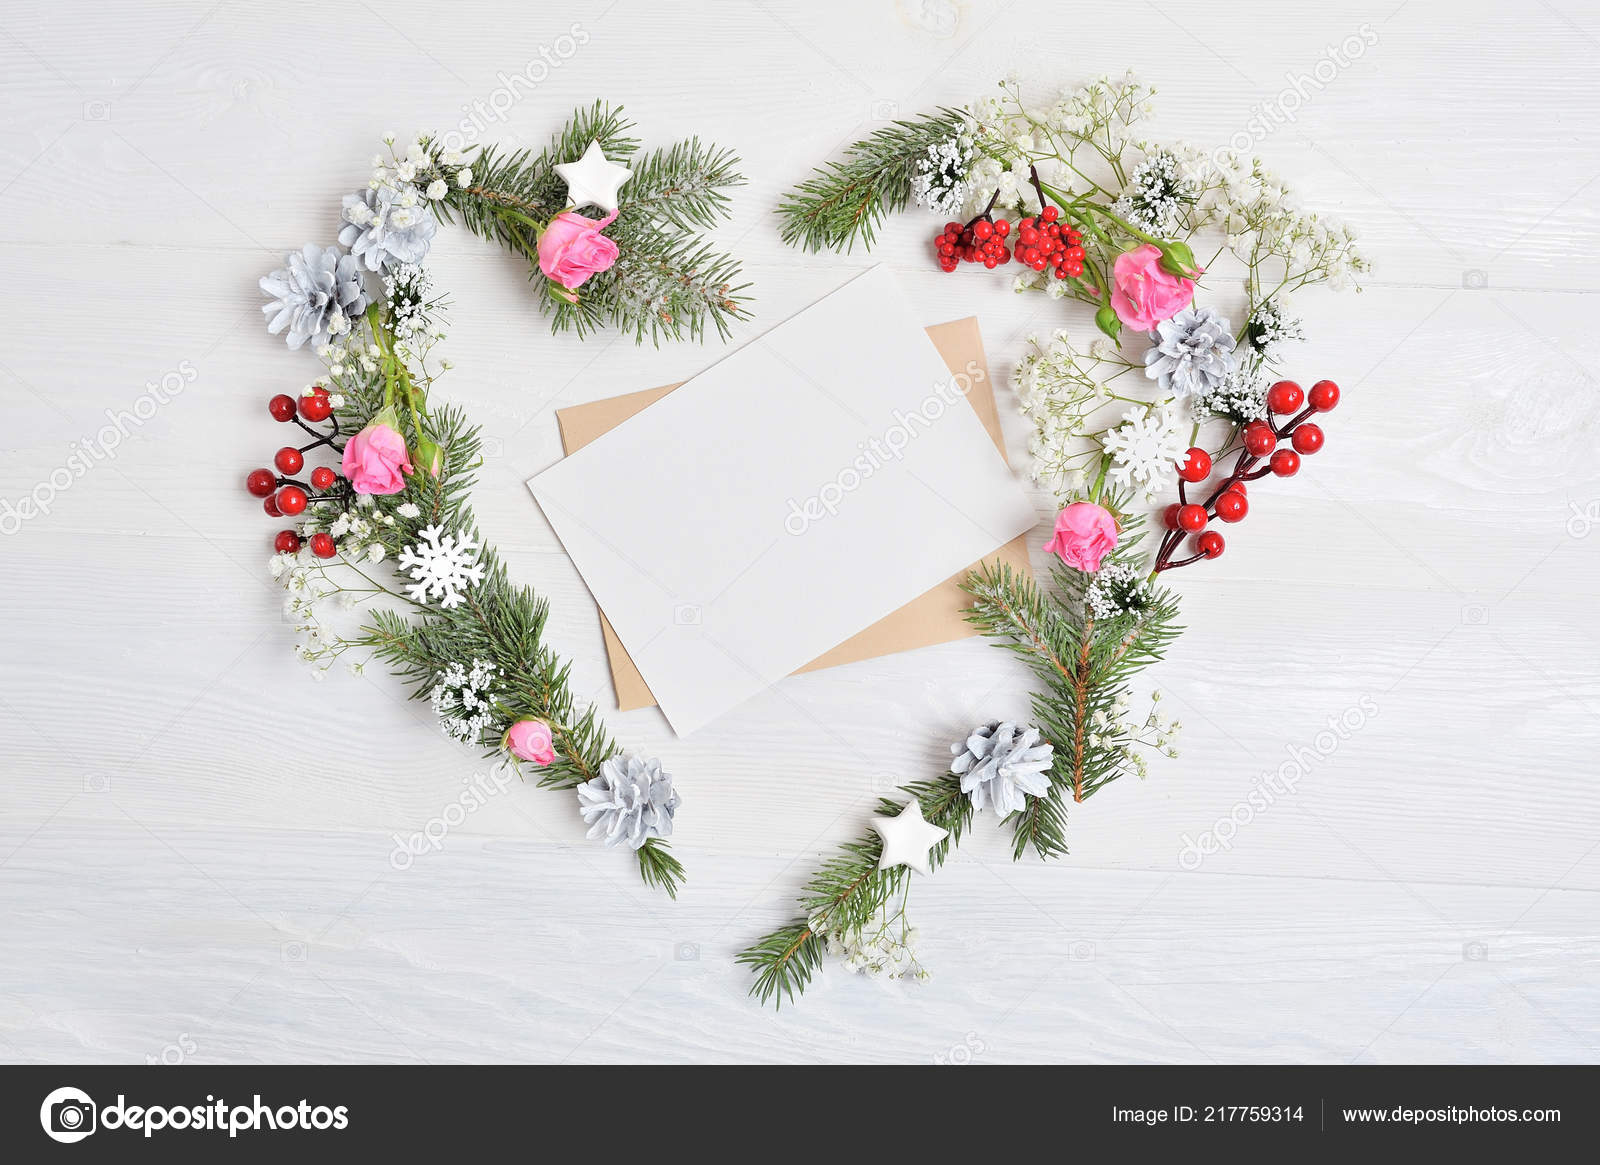 Mockup Of Christmas Wreath In Form Of Heart With Sheet Of Paper